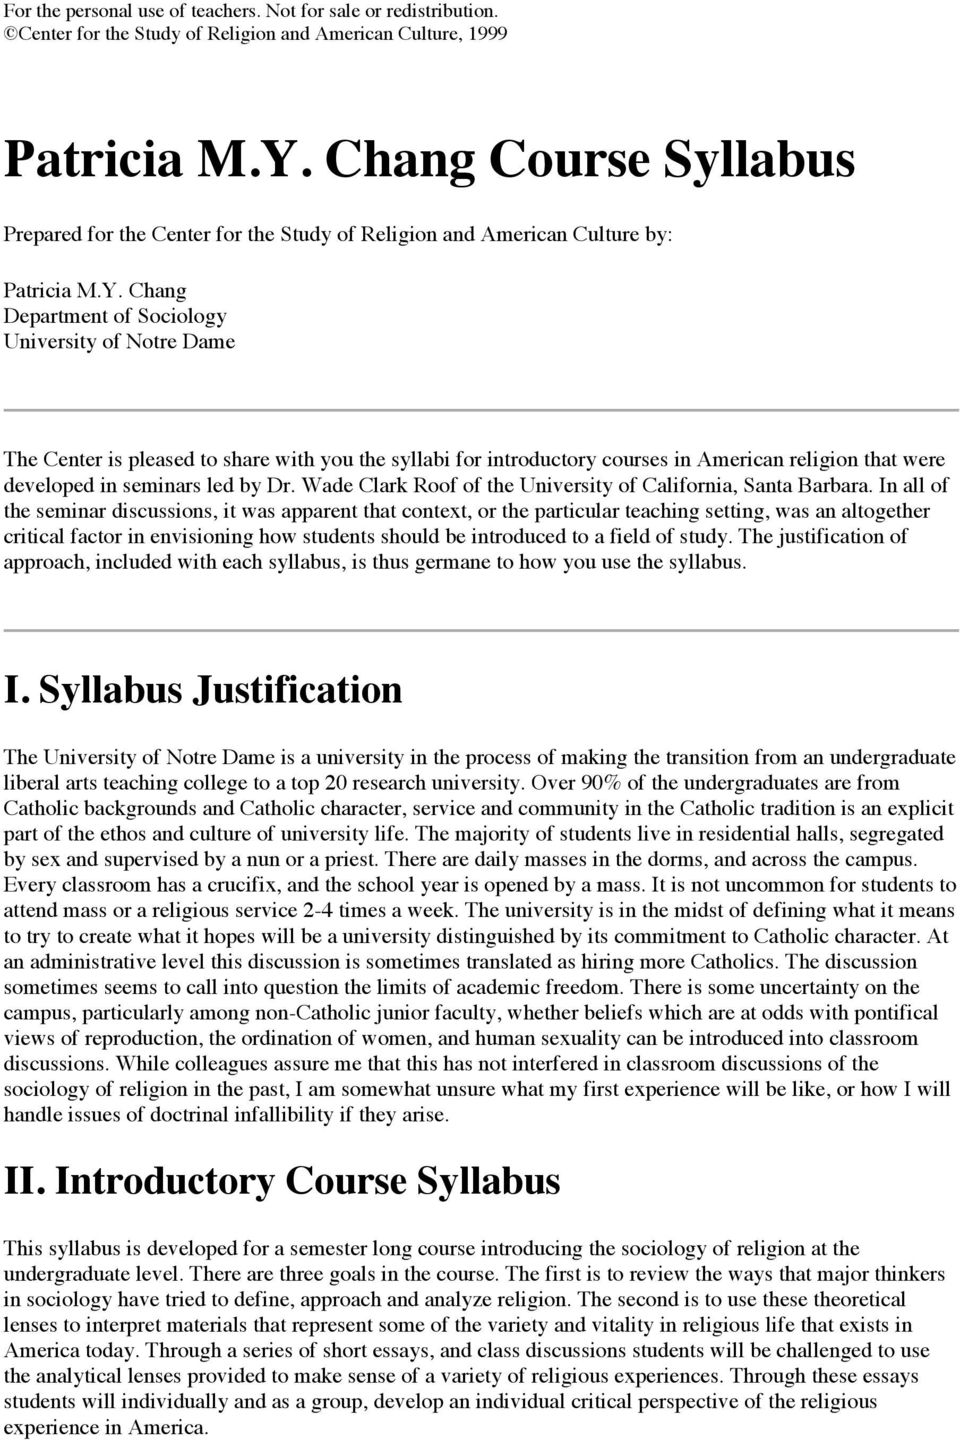 syllabi for introductory courses in American religion that were developed in seminars led by Dr. Wade Clark Roof of the University of California, Santa Barbara.